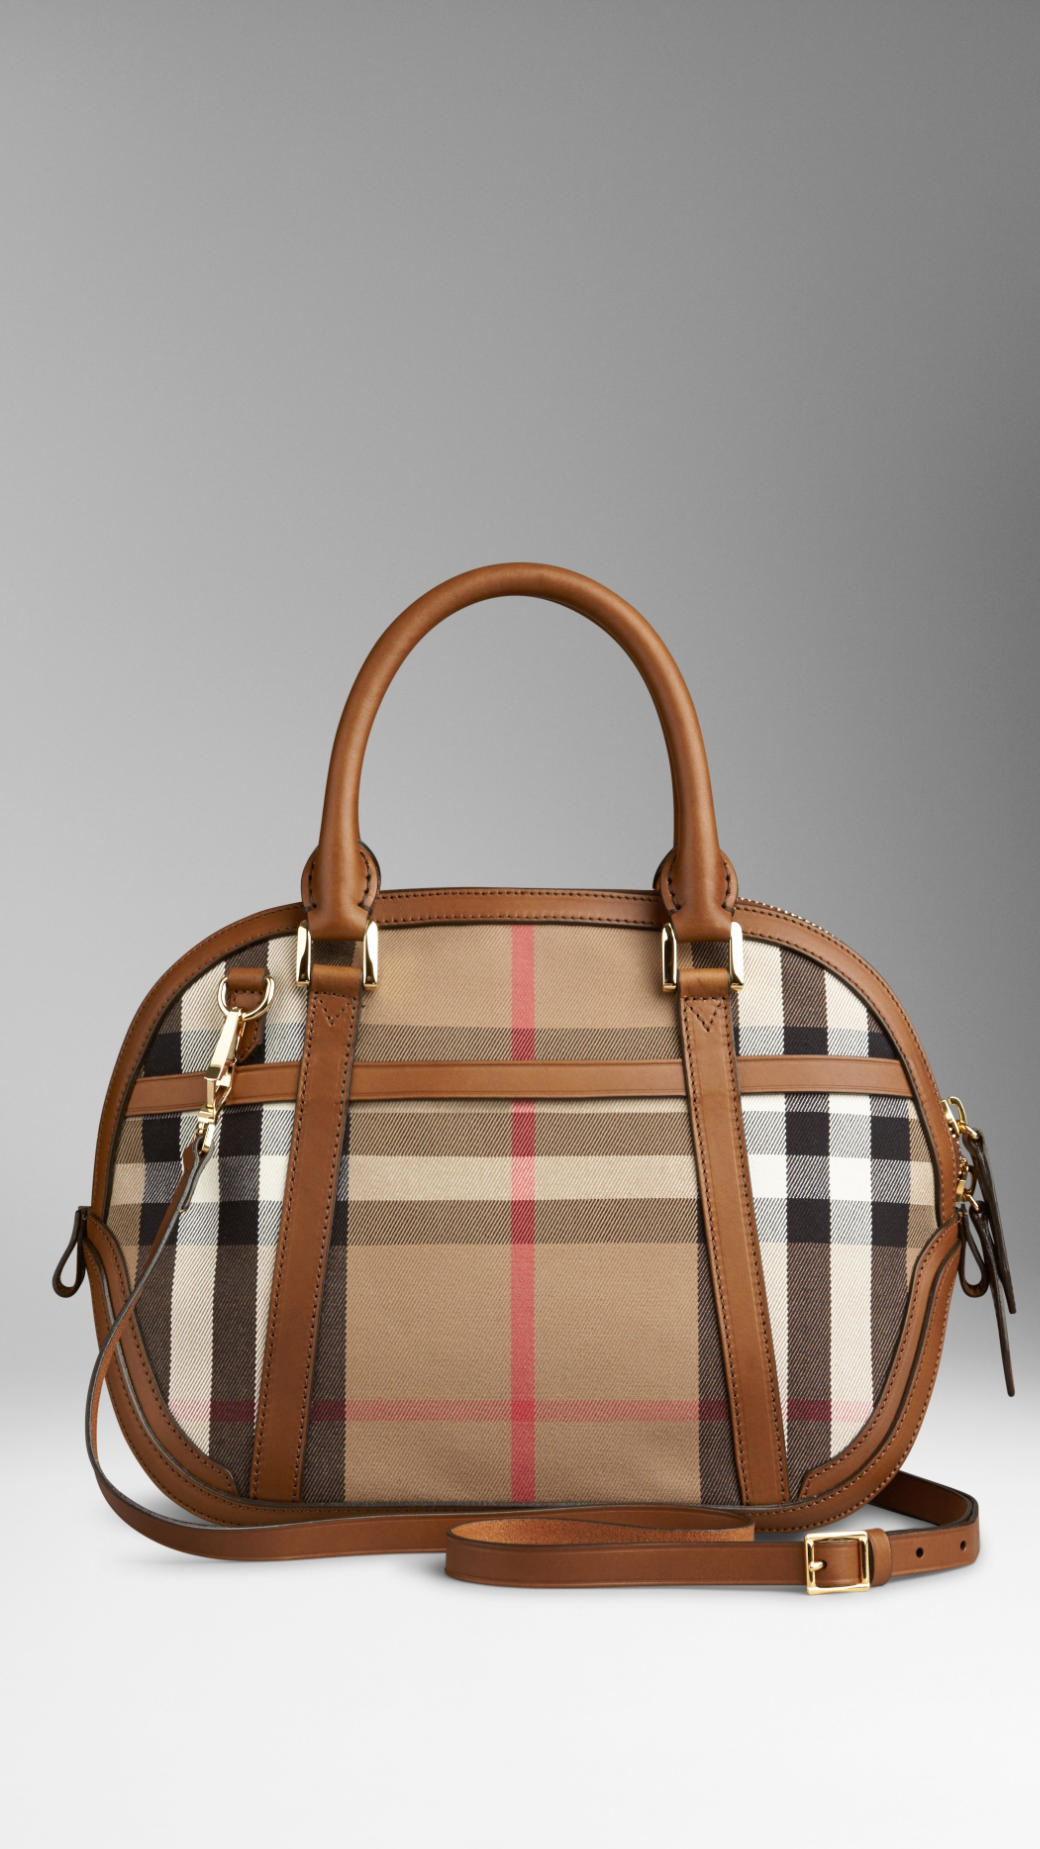 582af9cecfd6 Lyst - Burberry The Small Orchard In House Check in Brown